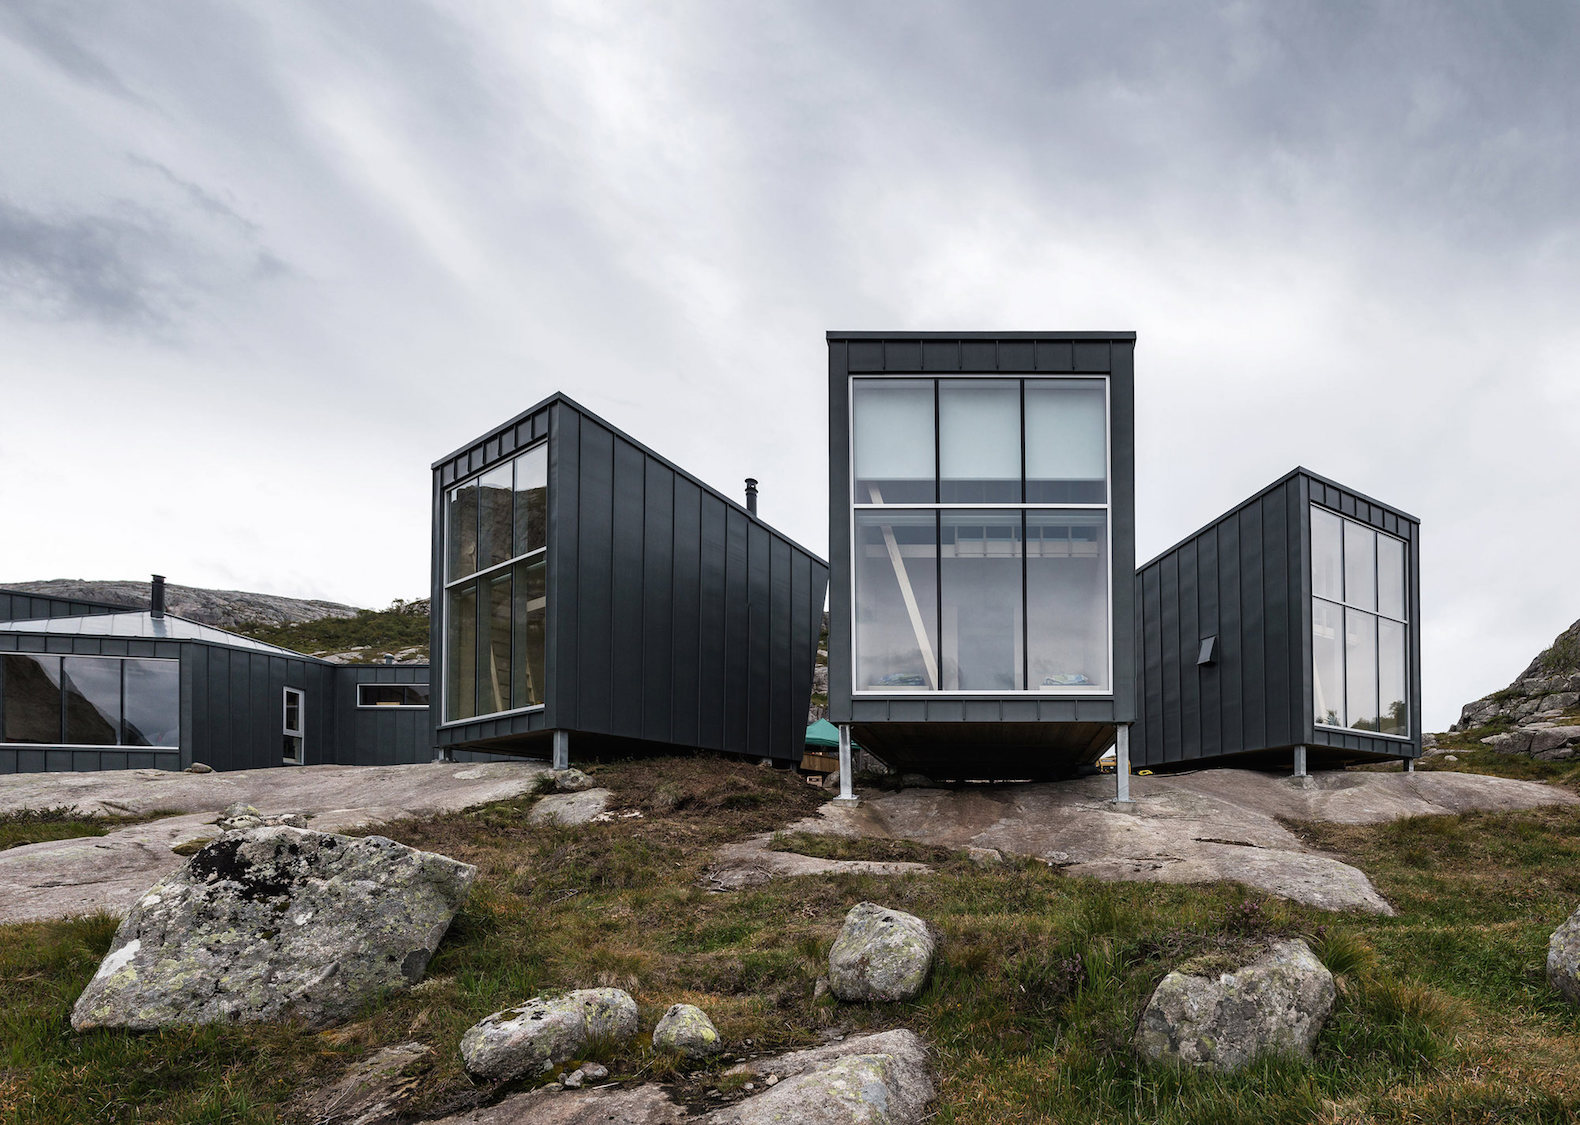 Building off grid homes - Rugged Eco Friendly Cabins Offer Off Grid Lodging In Norway S Wilderness